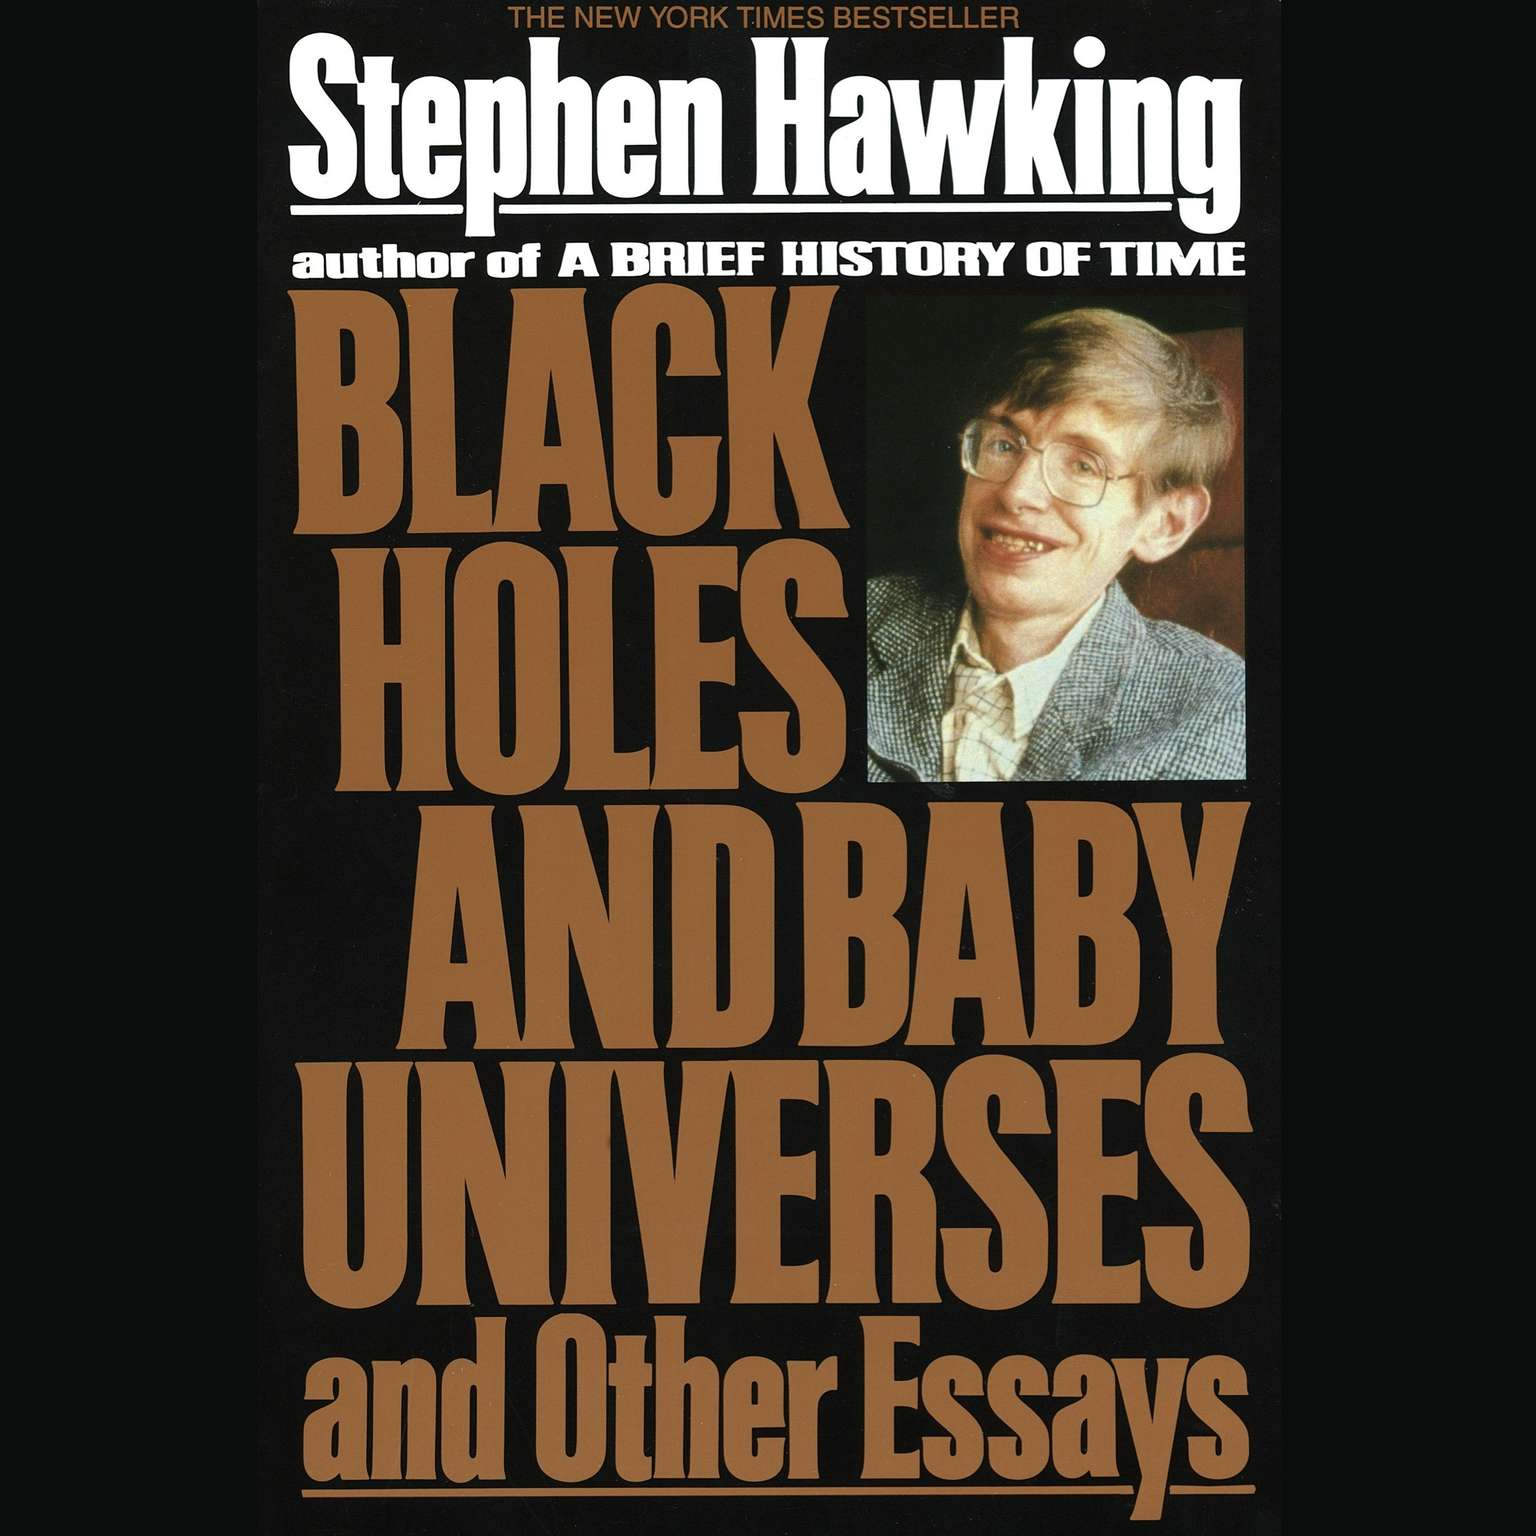 black holes and baby universes and other essays audiobook  extended audio sample black holes and baby universes and other essays and other essays audiobook by stephen